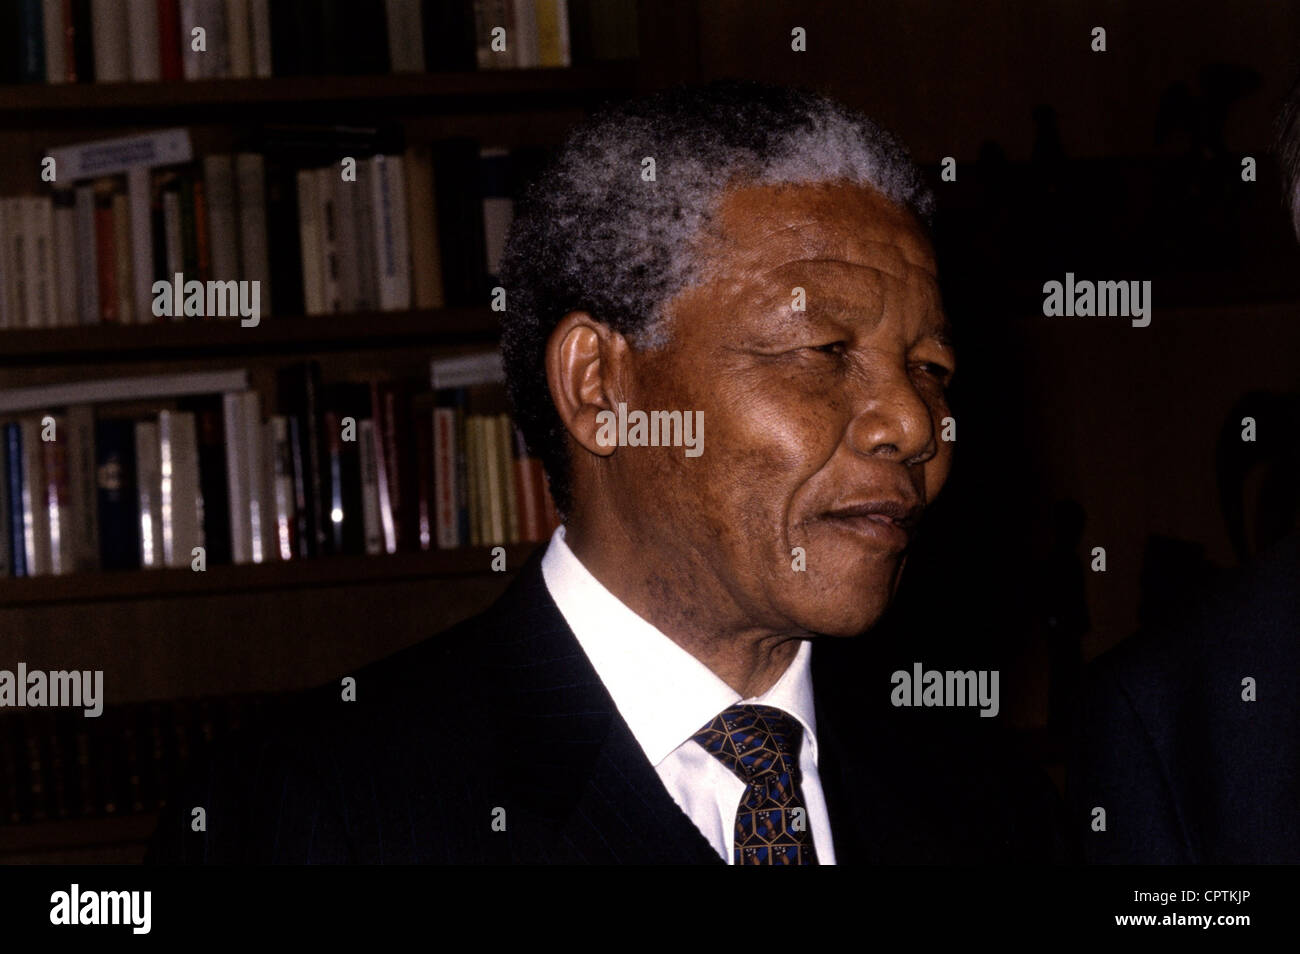 Mandela, Nelson, 18.7.1918 - 5.12.2013, South African politician (ANC), portrait, early 1990s, Additional-Rights - Stock Image